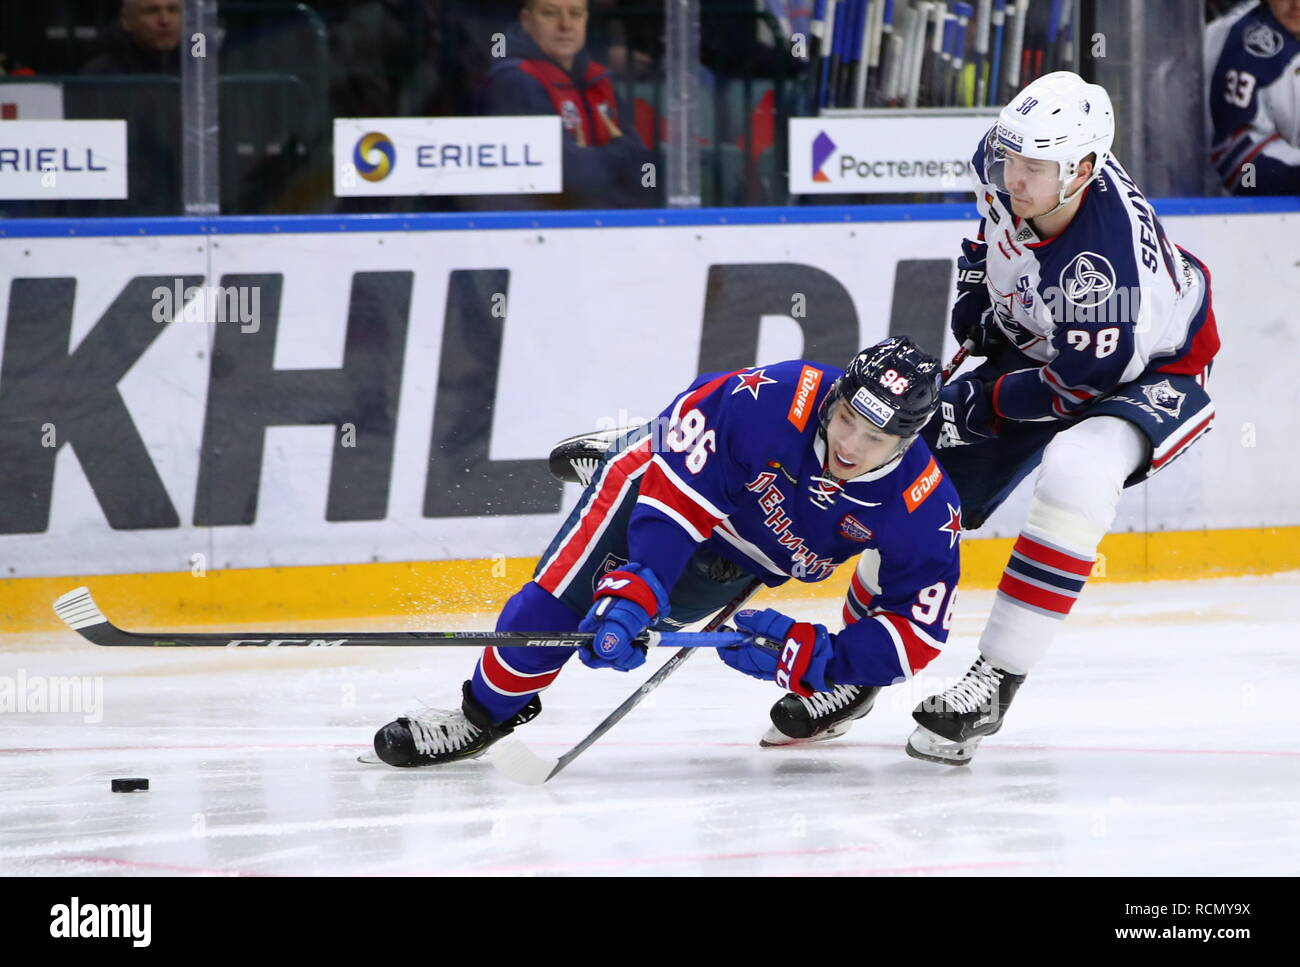 St Petersburg, Russia. 15th Jan, 2019. ST PETERSBURG, RUSSIA - JANUARY 15, 2019: SKA St Petersburg's Andrei Kuzmenko (L) and Neftekhimik Nizhnekamsk's Gleb Semyonov in a 2018/2019 KHL Regular Season ice hockey match between SKA St Petersburg and Neftekhimik Nizhnekamsk at Ledovy Dvorets (Ice Palace) Arena. Peter Kovalev/TASS Credit: ITAR-TASS News Agency/Alamy Live News - Stock Image